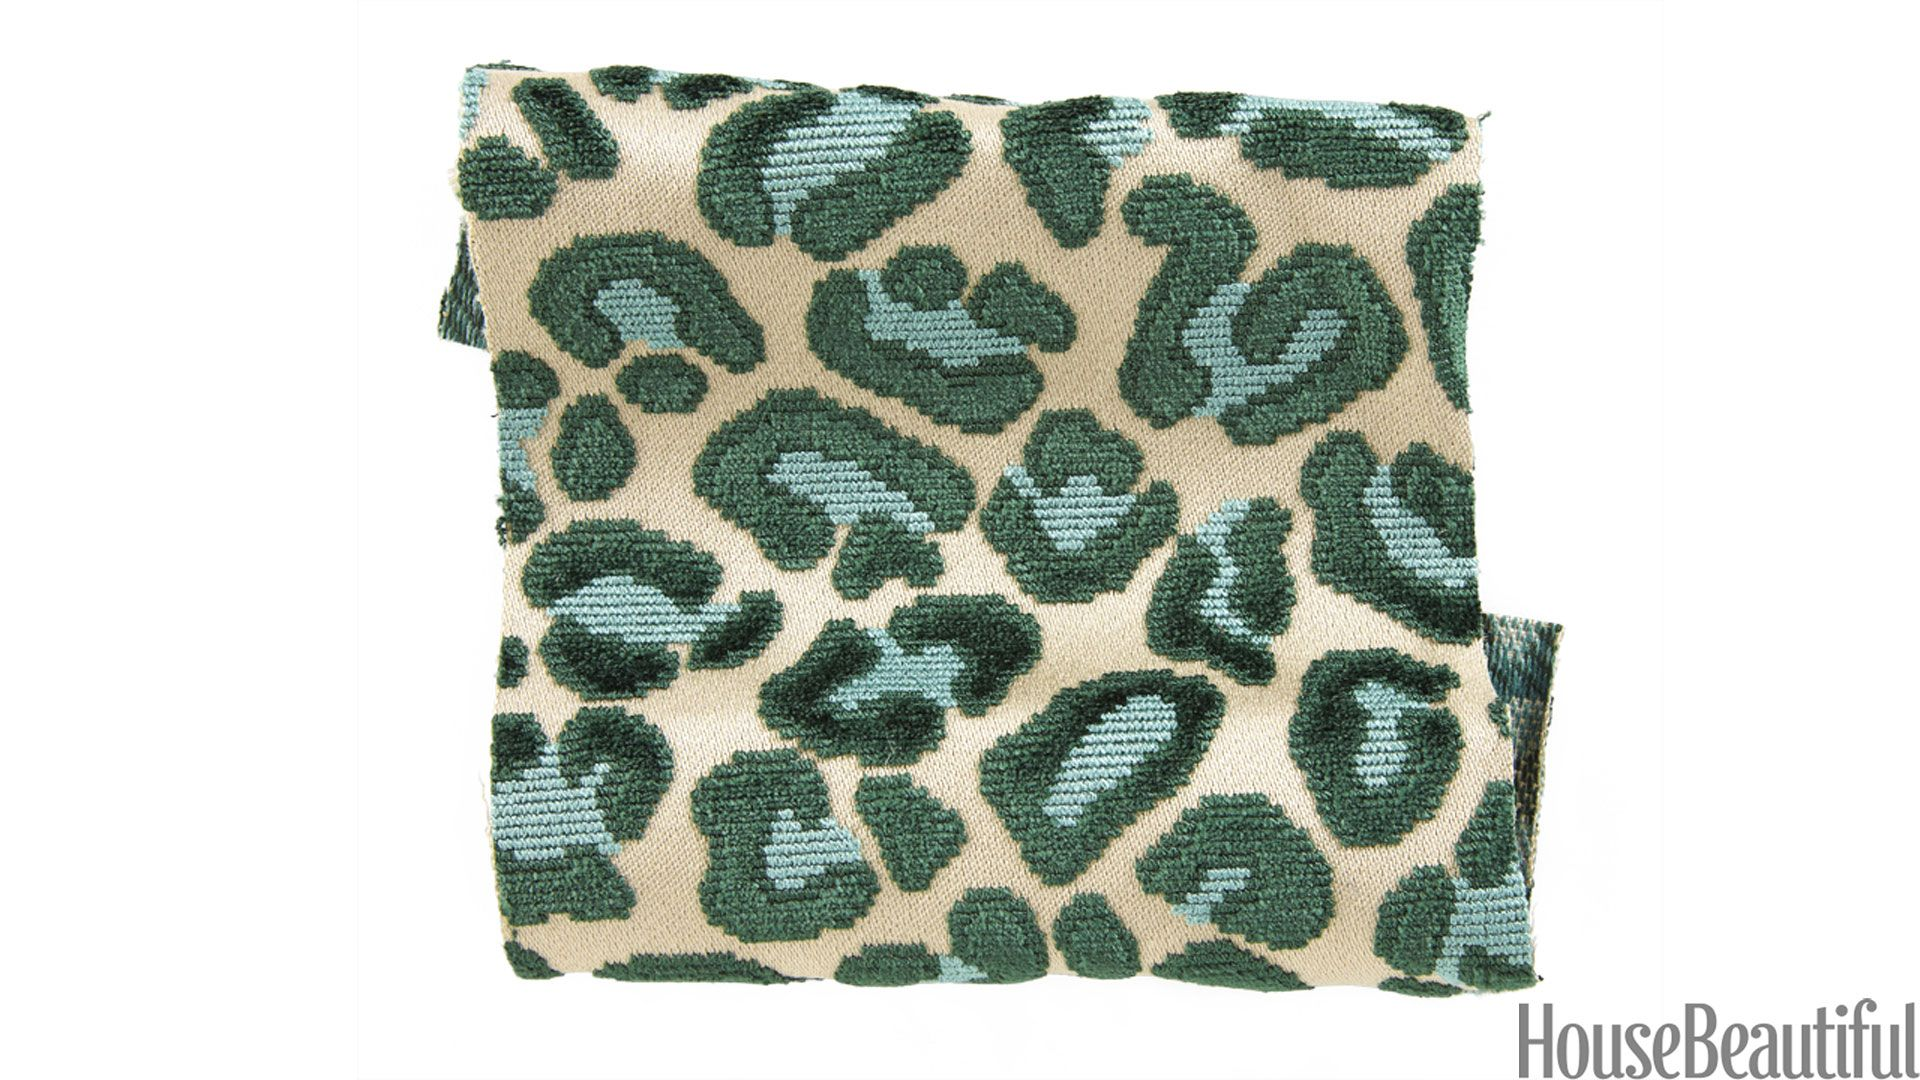 Leopard Fabric Leopard Print Fabric  Leopard Print Upholstery Fabric And Textiles